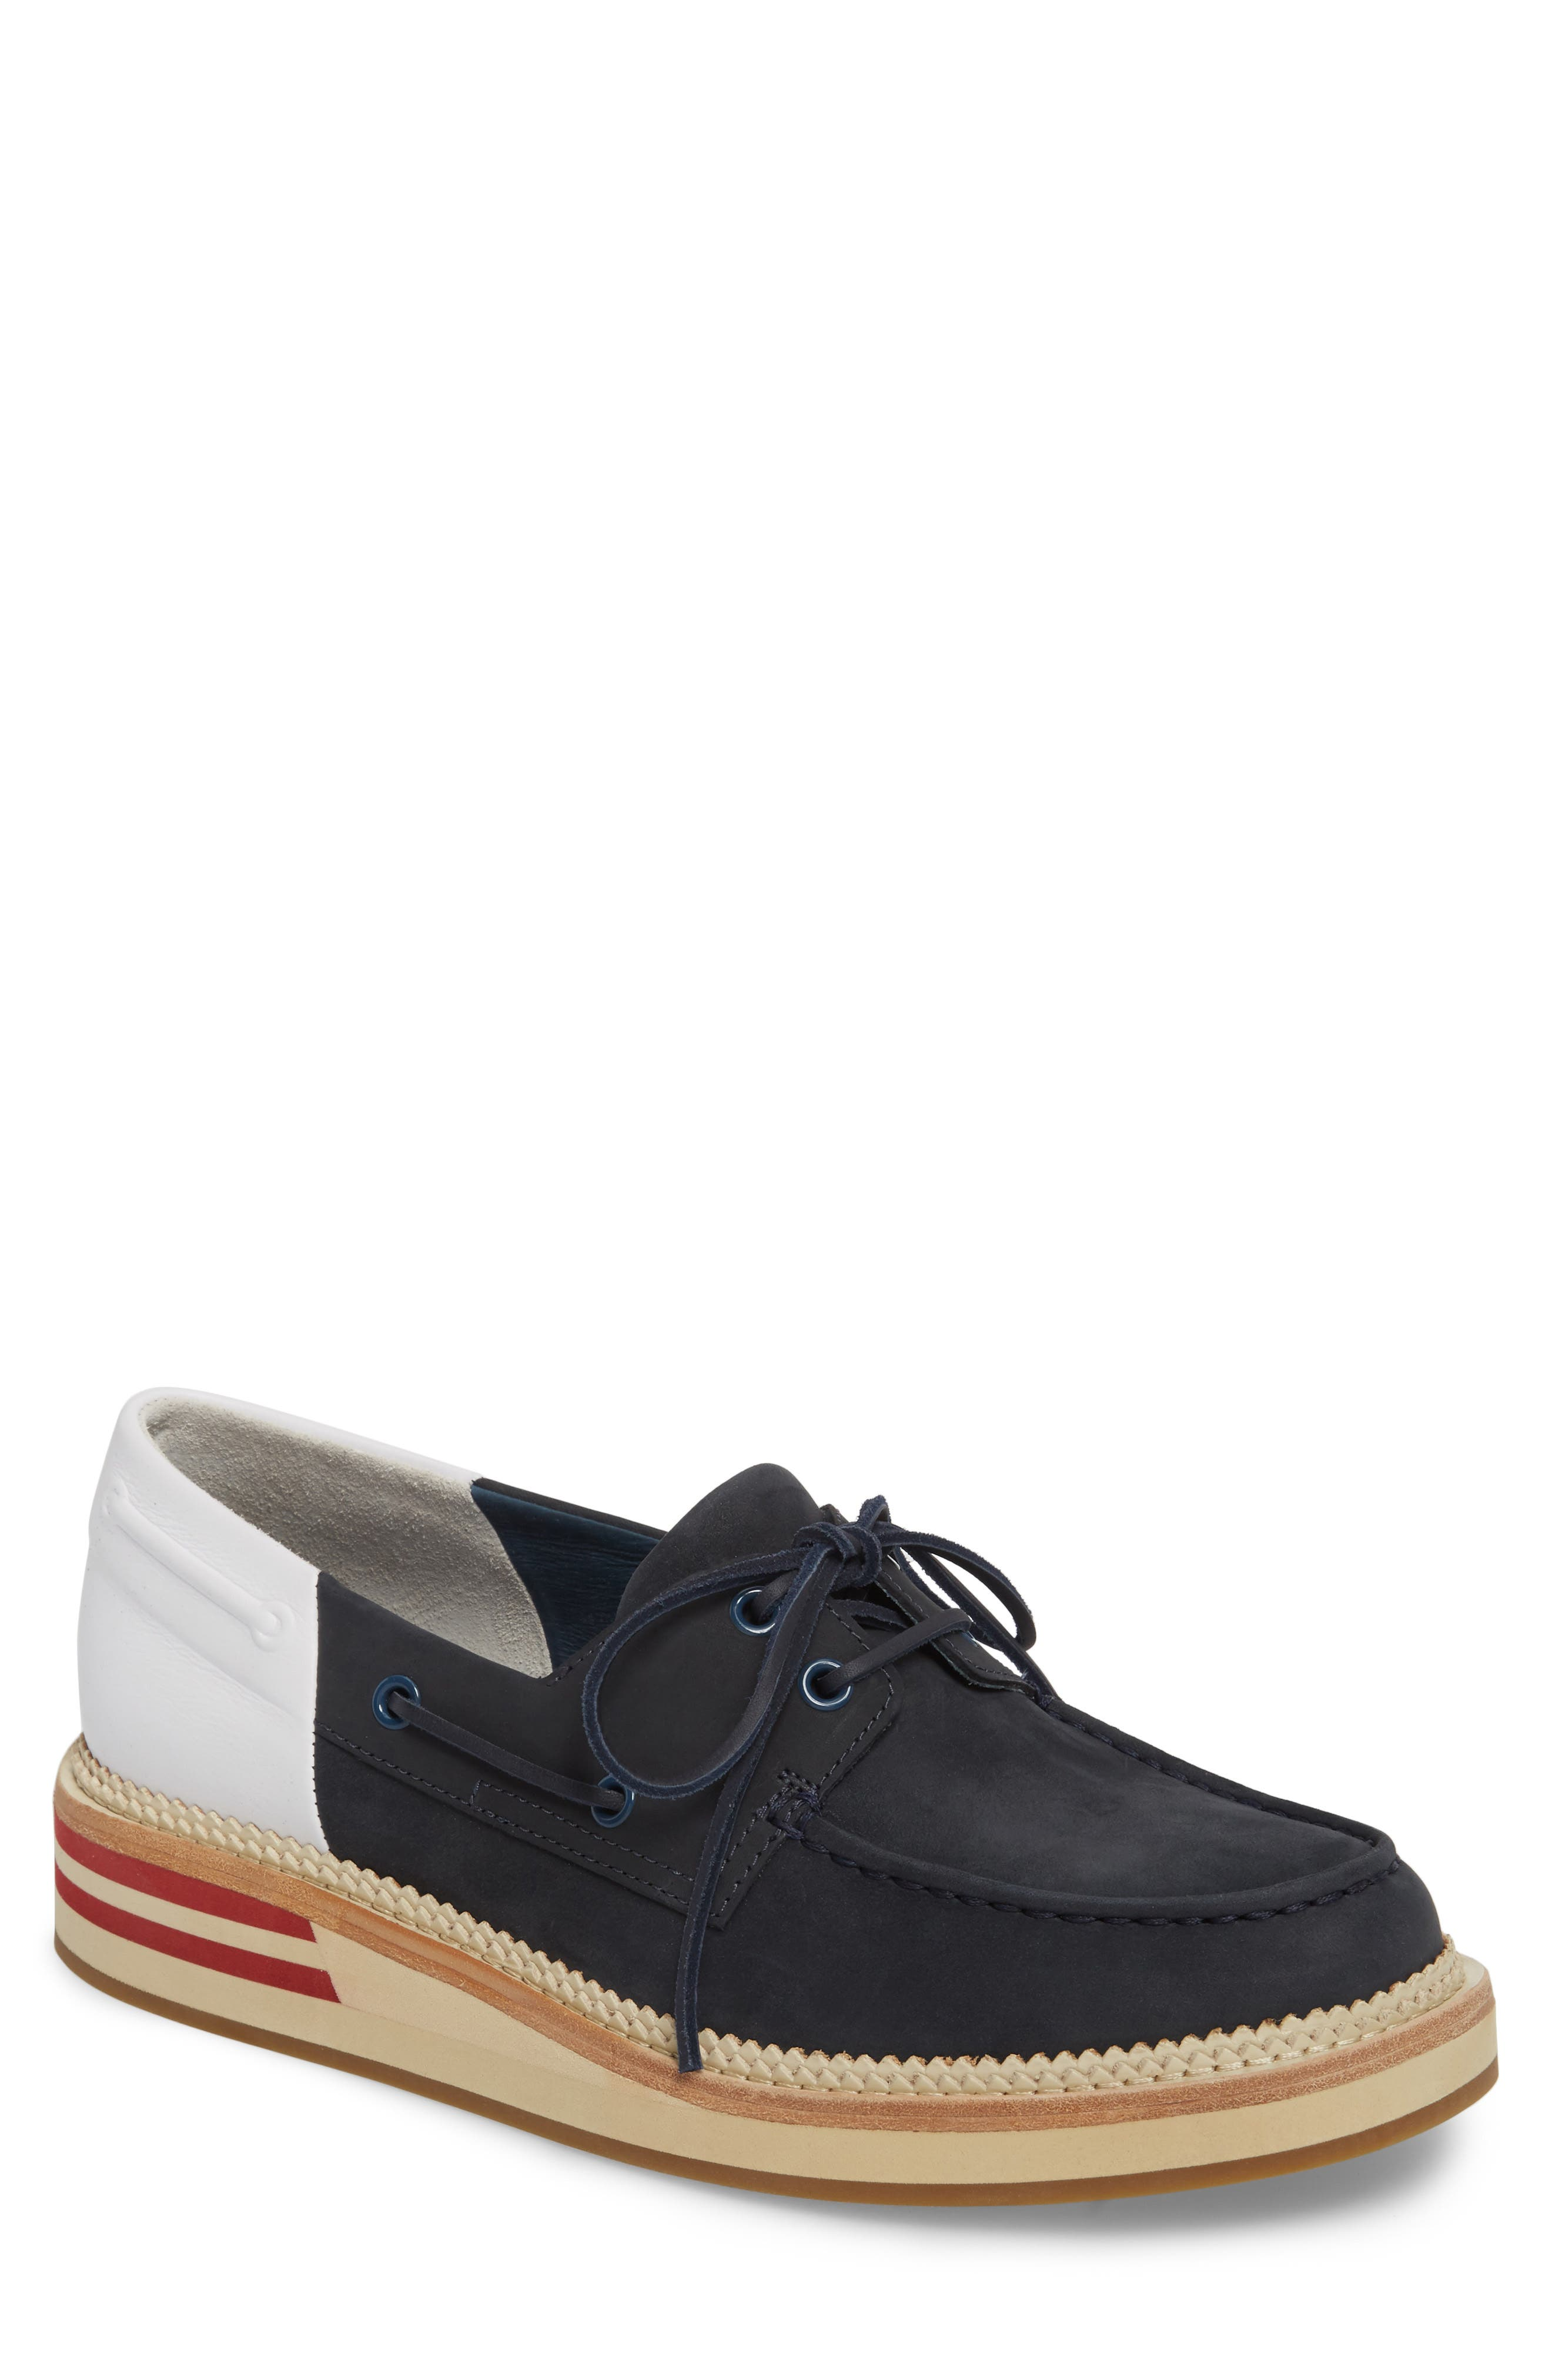 Cloud Colorblocked Boat Shoe,                             Main thumbnail 1, color,                             400